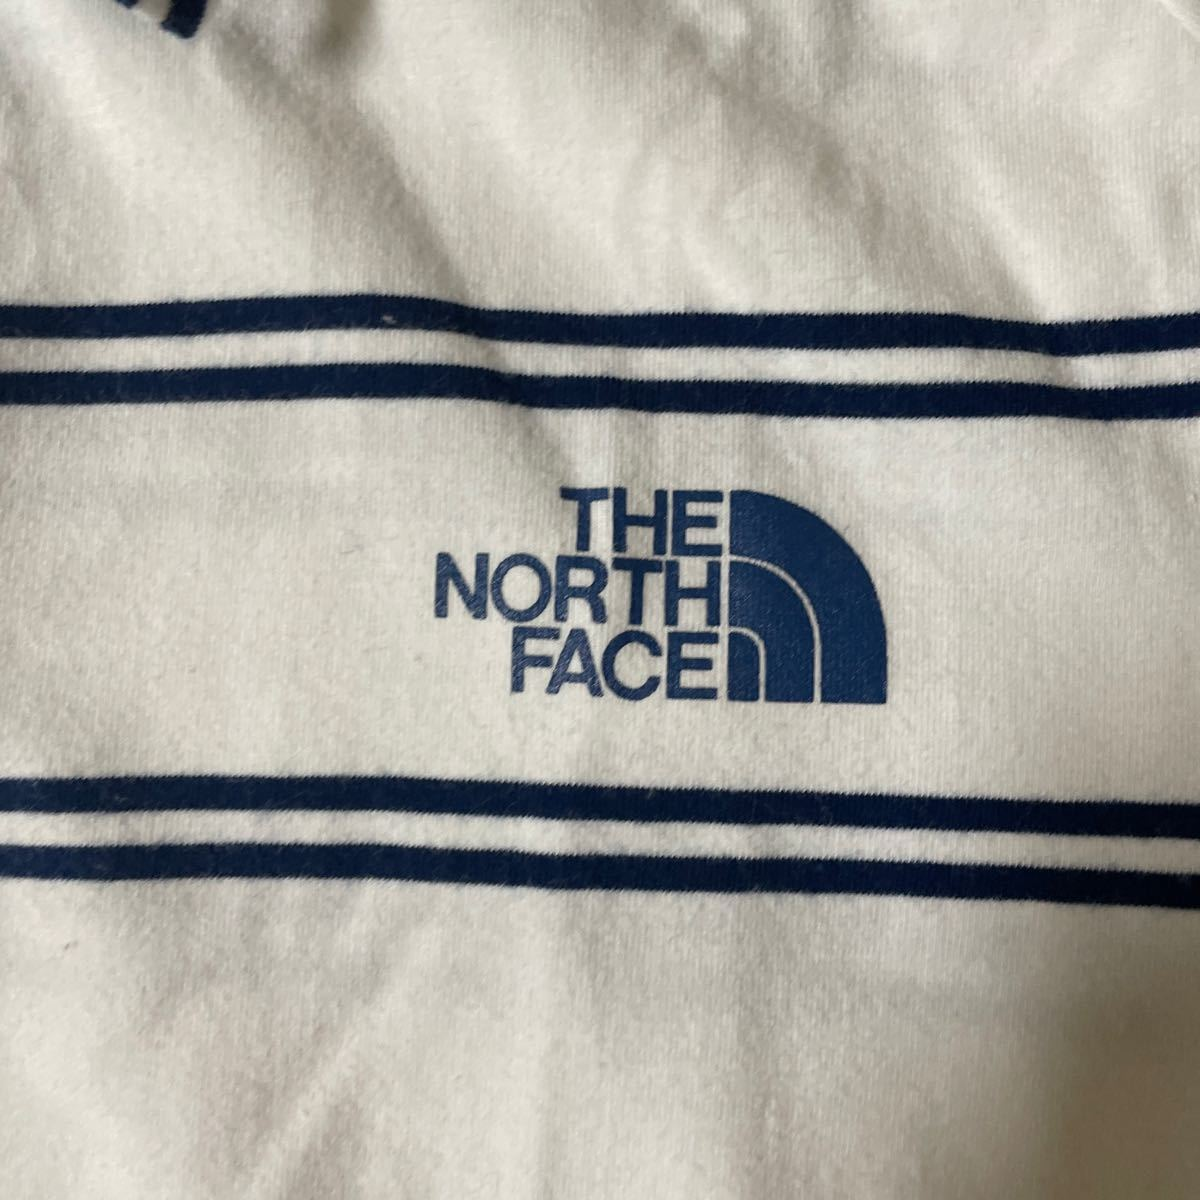 【THE NORTH FACE】 ザノースフェイス ポロシャツ